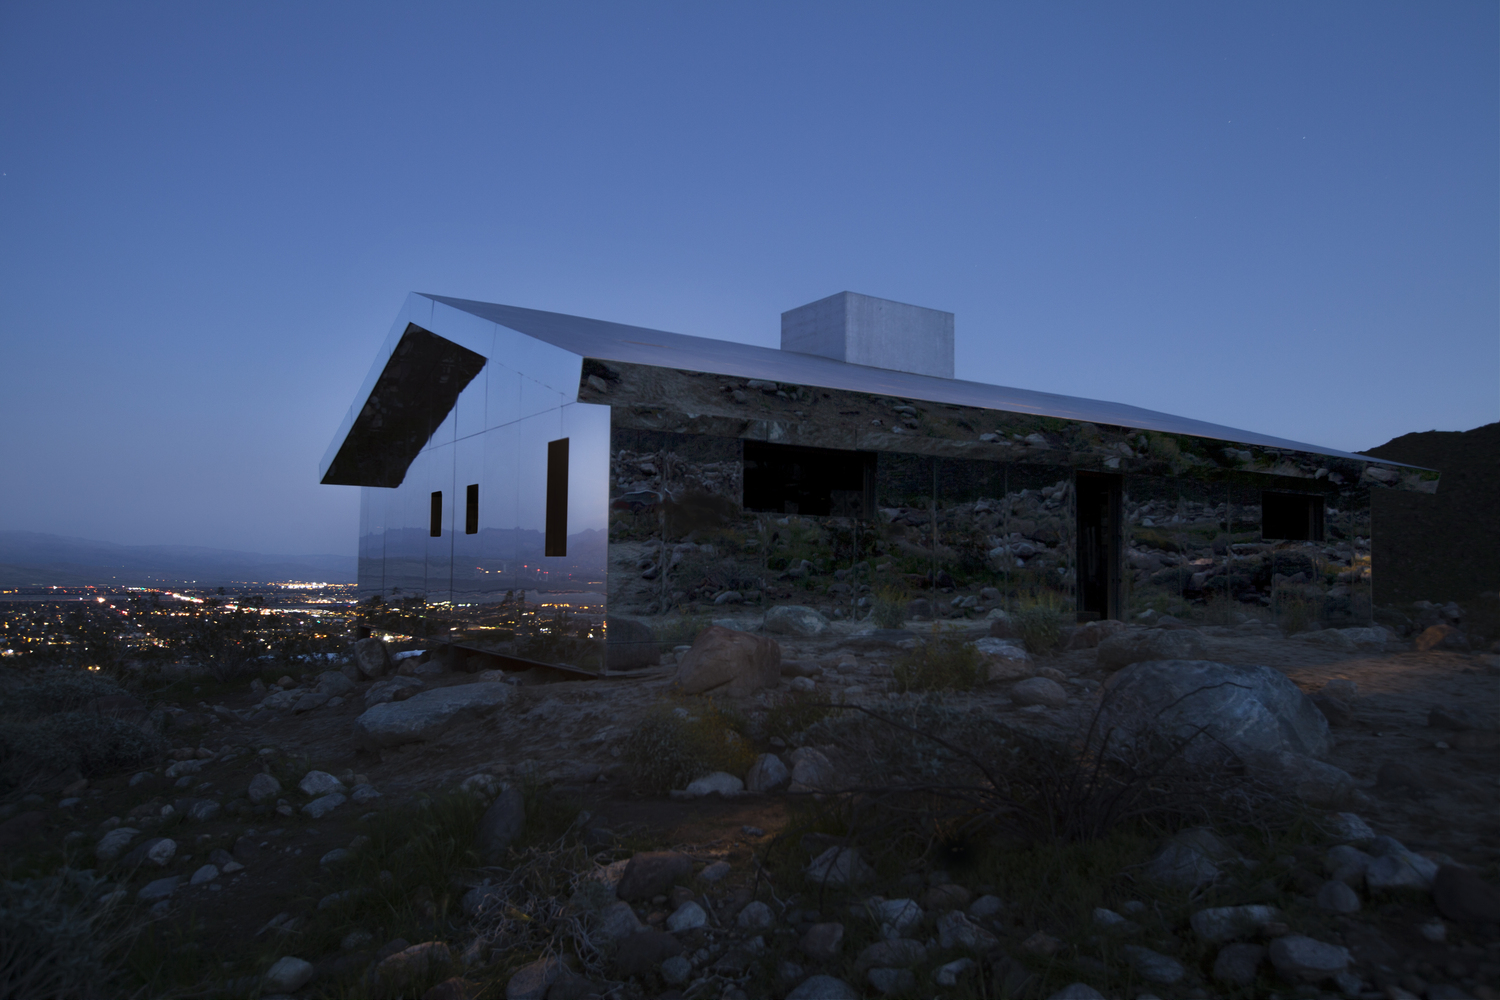 Reflective Ranch Style House Captures The American West In New InstallationC Dakota Higgins